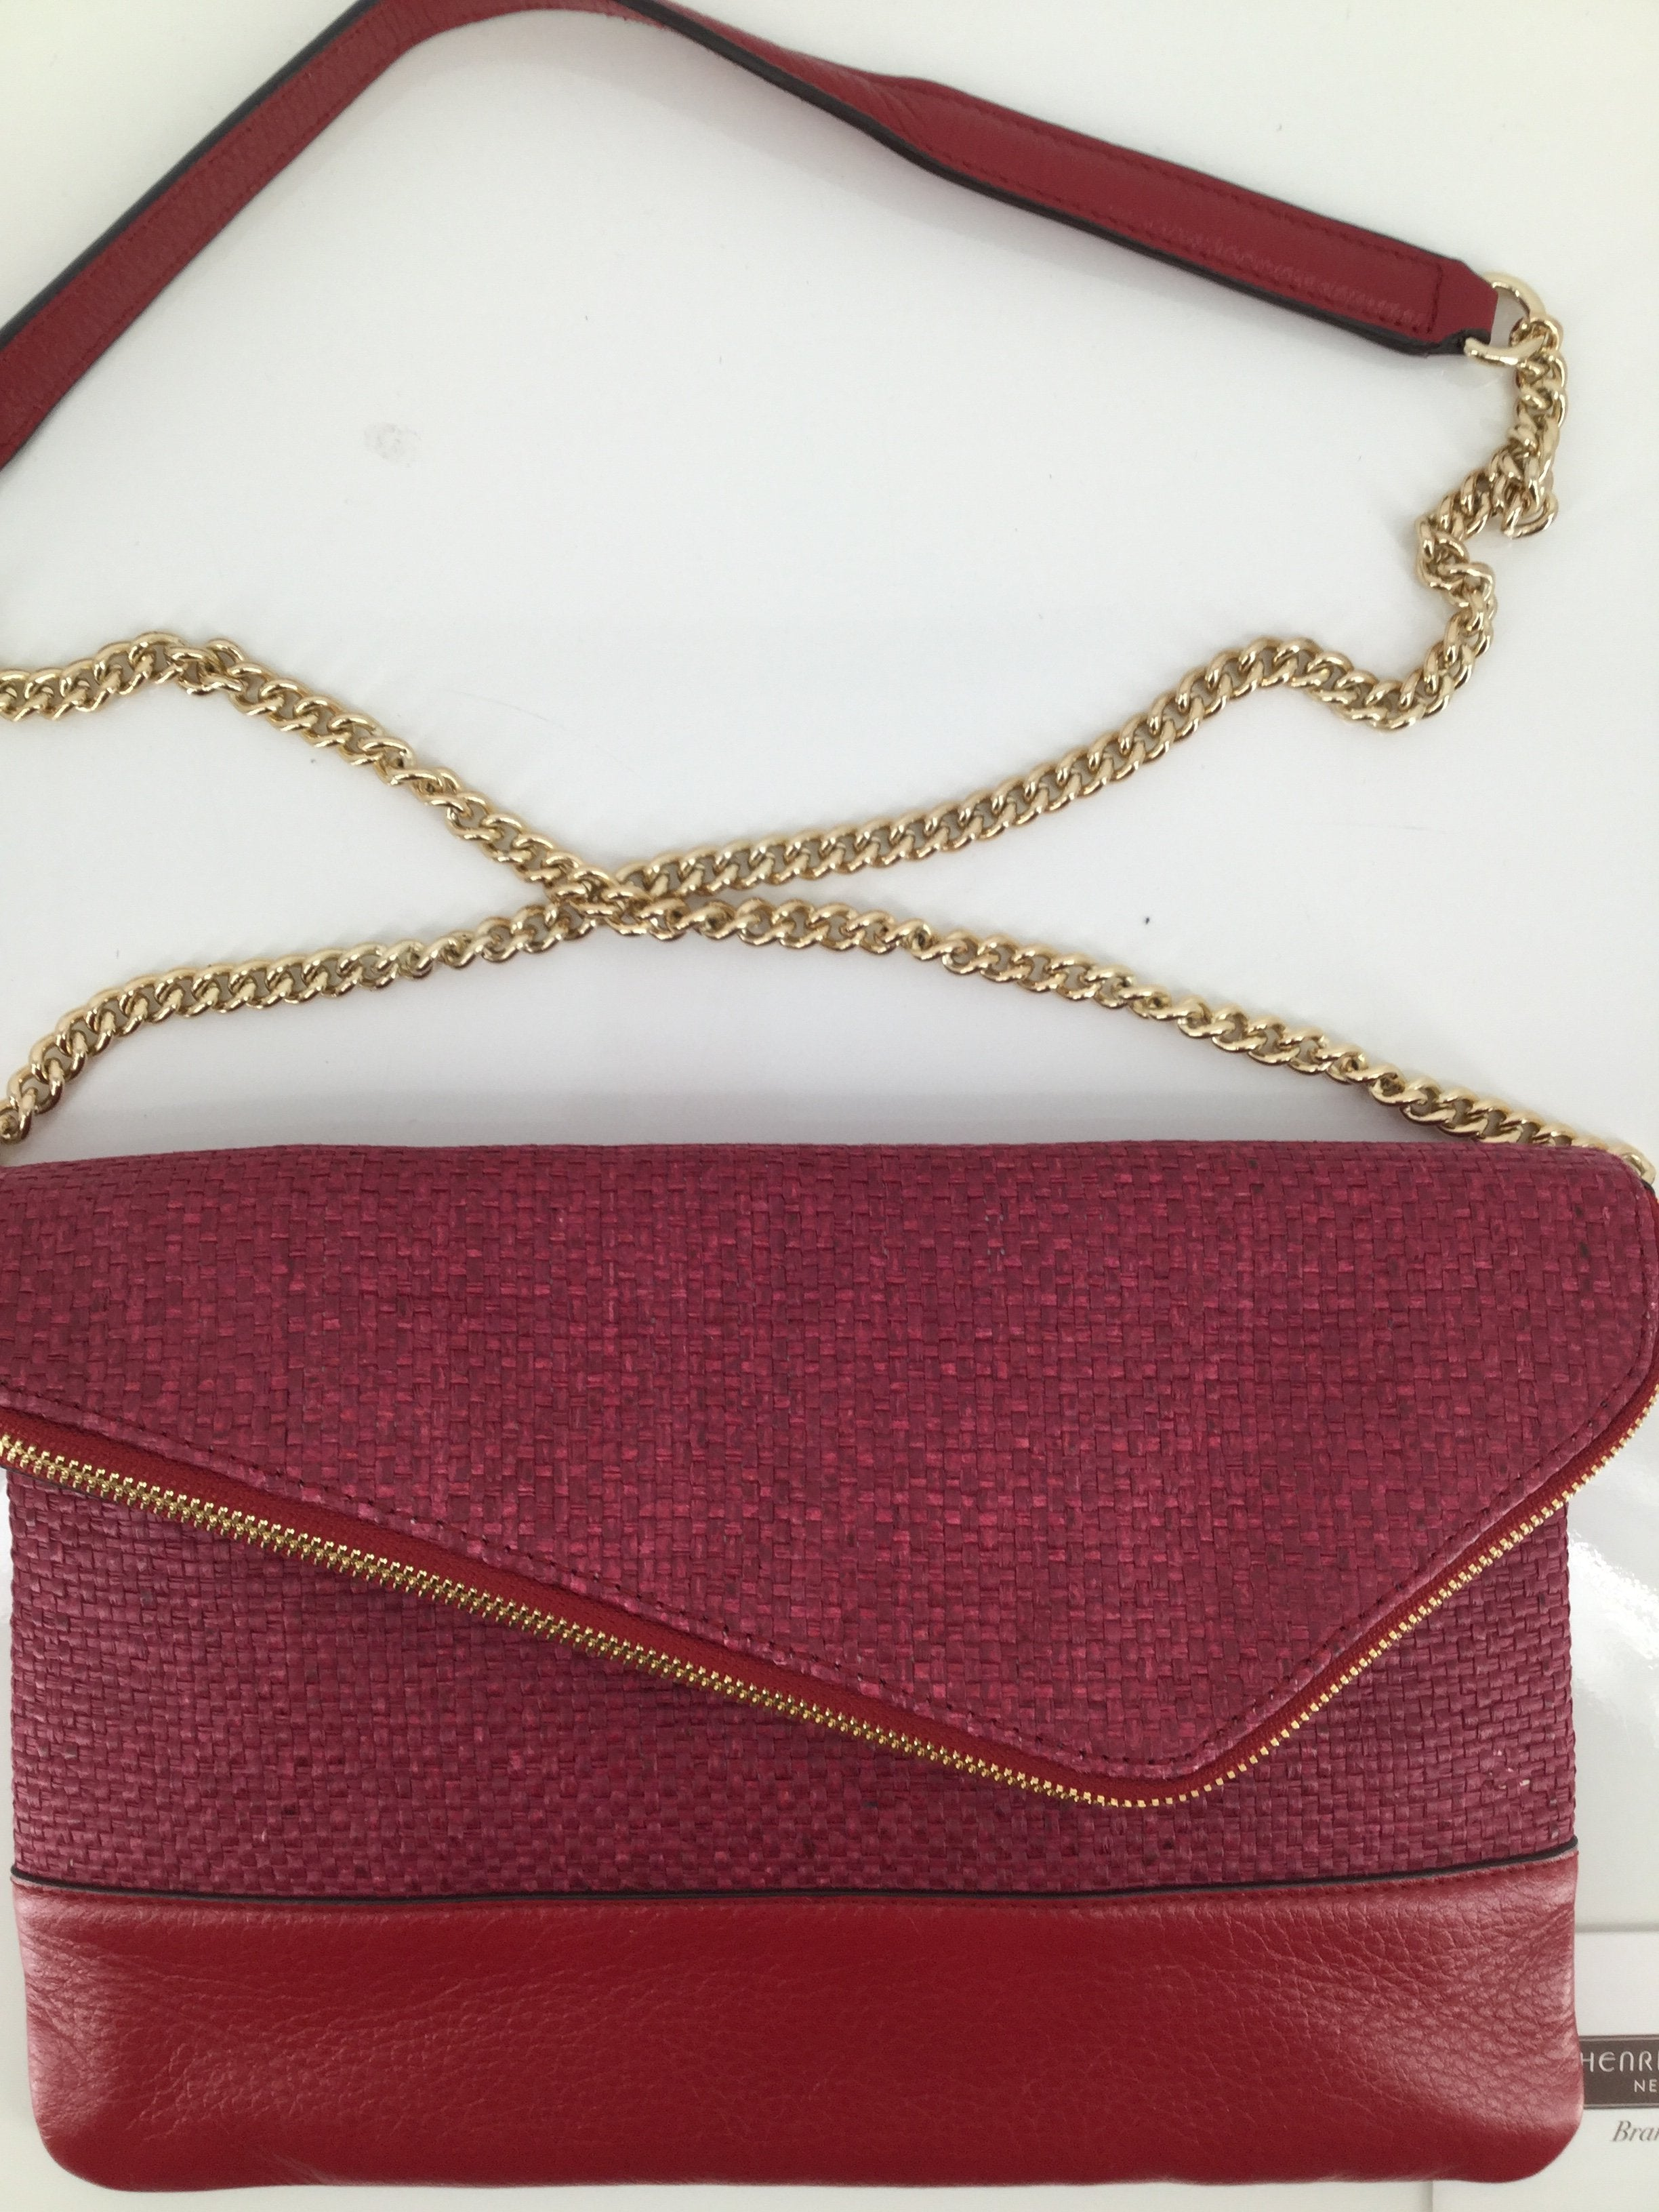 Henri Bendel Handbag Designer Size:medium - <p>beautiful red henri bendel crossbody purse.  gold hardware and partial gold chain with red leather on the over-the-shoulder area.  interior is in excellent condition.  exterior is a woven pattern with leather trim.  asymmetrical opening.  grey interior also with small zippered pocket.</p>